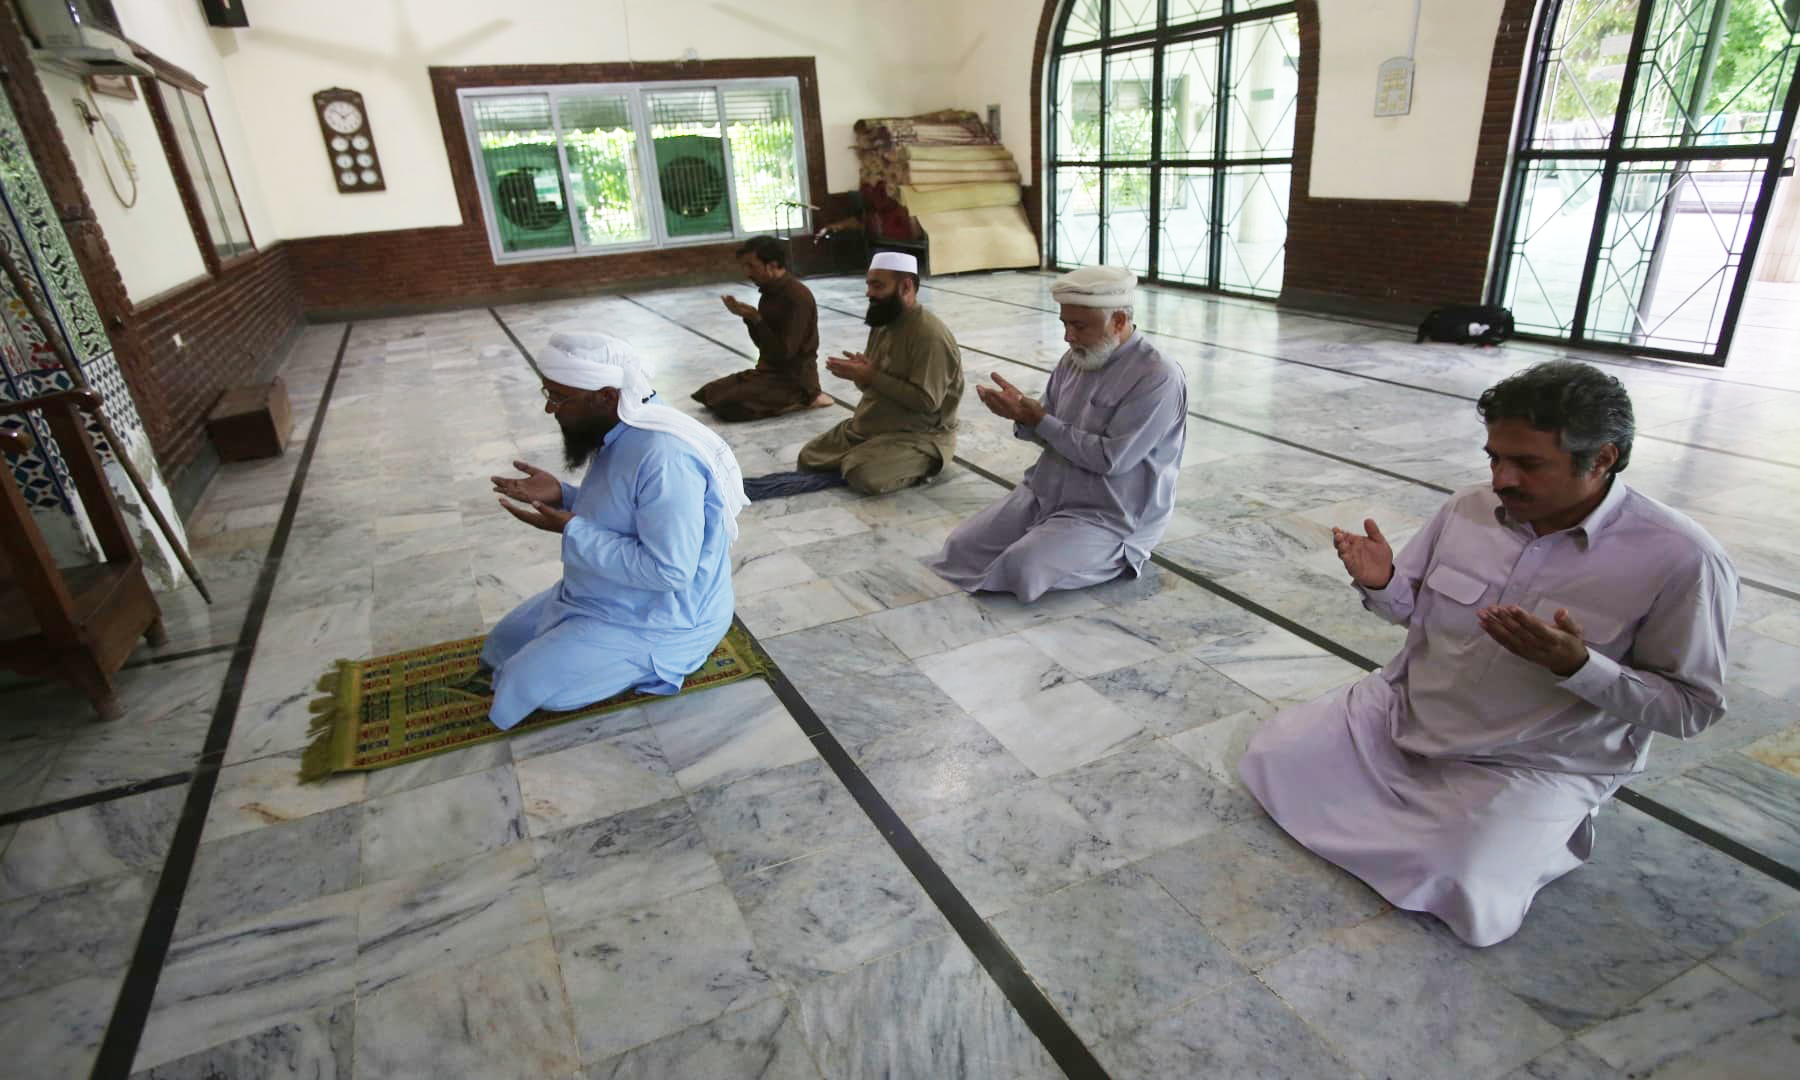 Five people attend Friday prayers at a mosque in Peshawar, maintaining distance as per the directives of the government. — AP/File